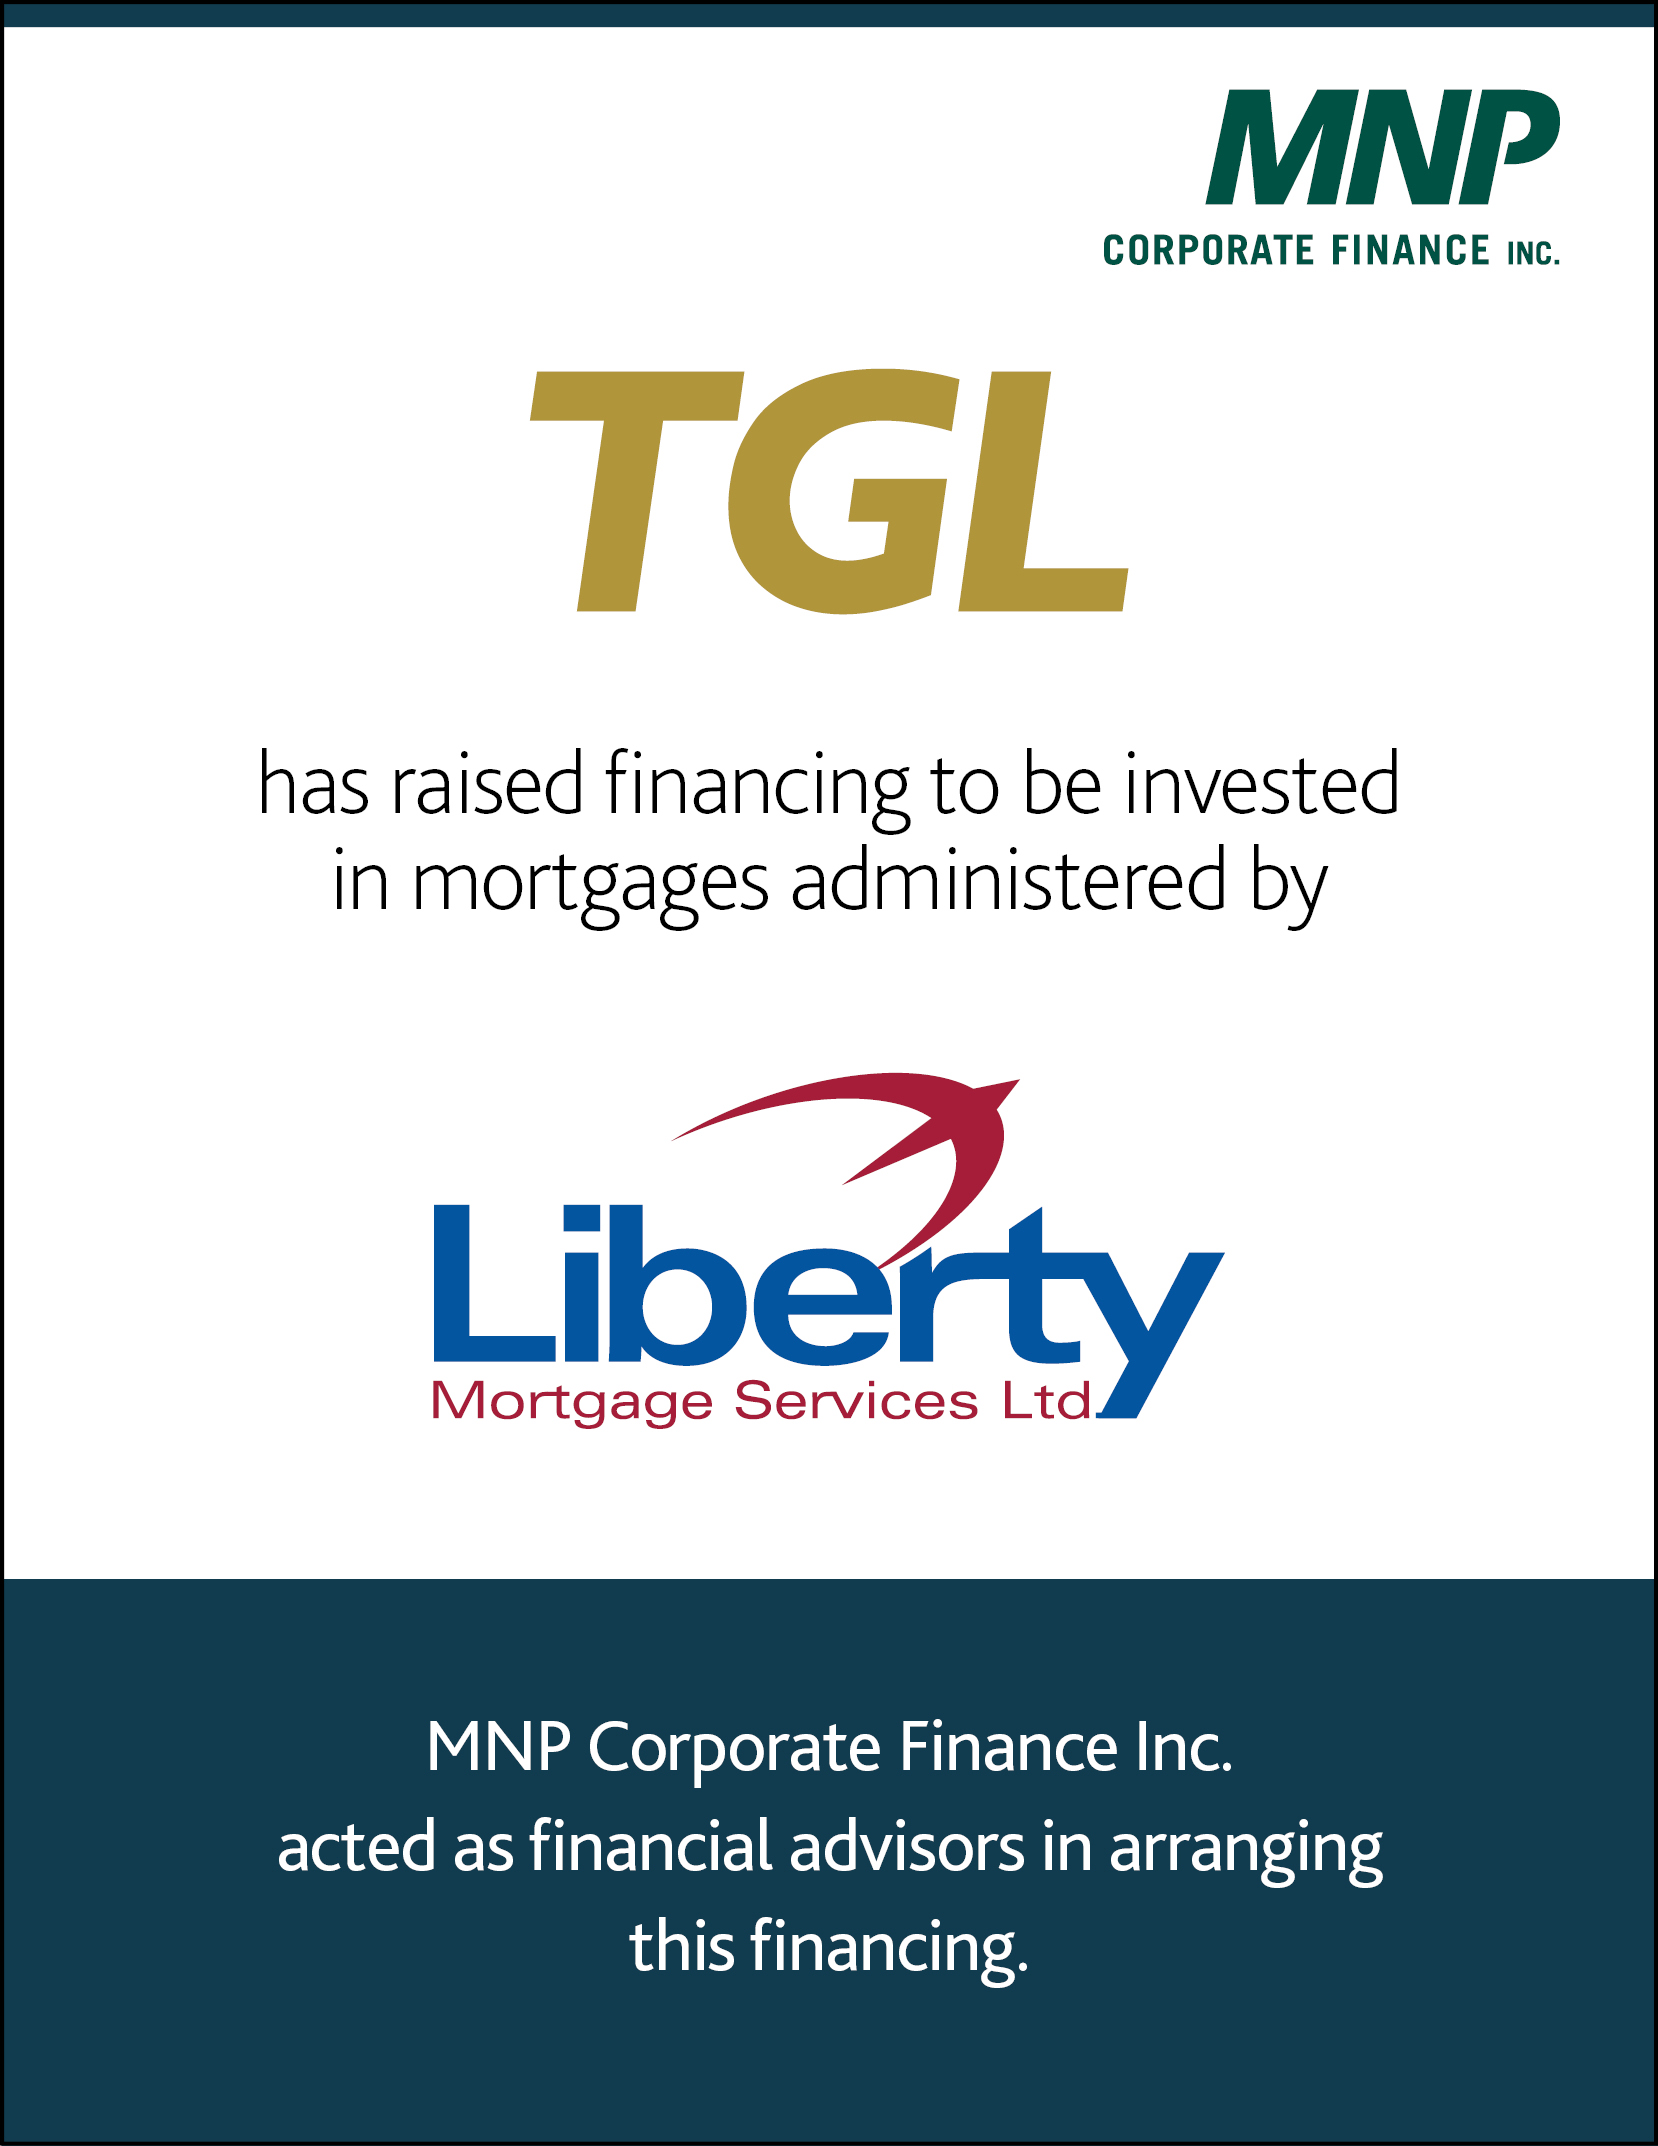 TGL Mortgage Investment Corp to be invested in mortgages administered by Liberty Mortgage Services Ltd